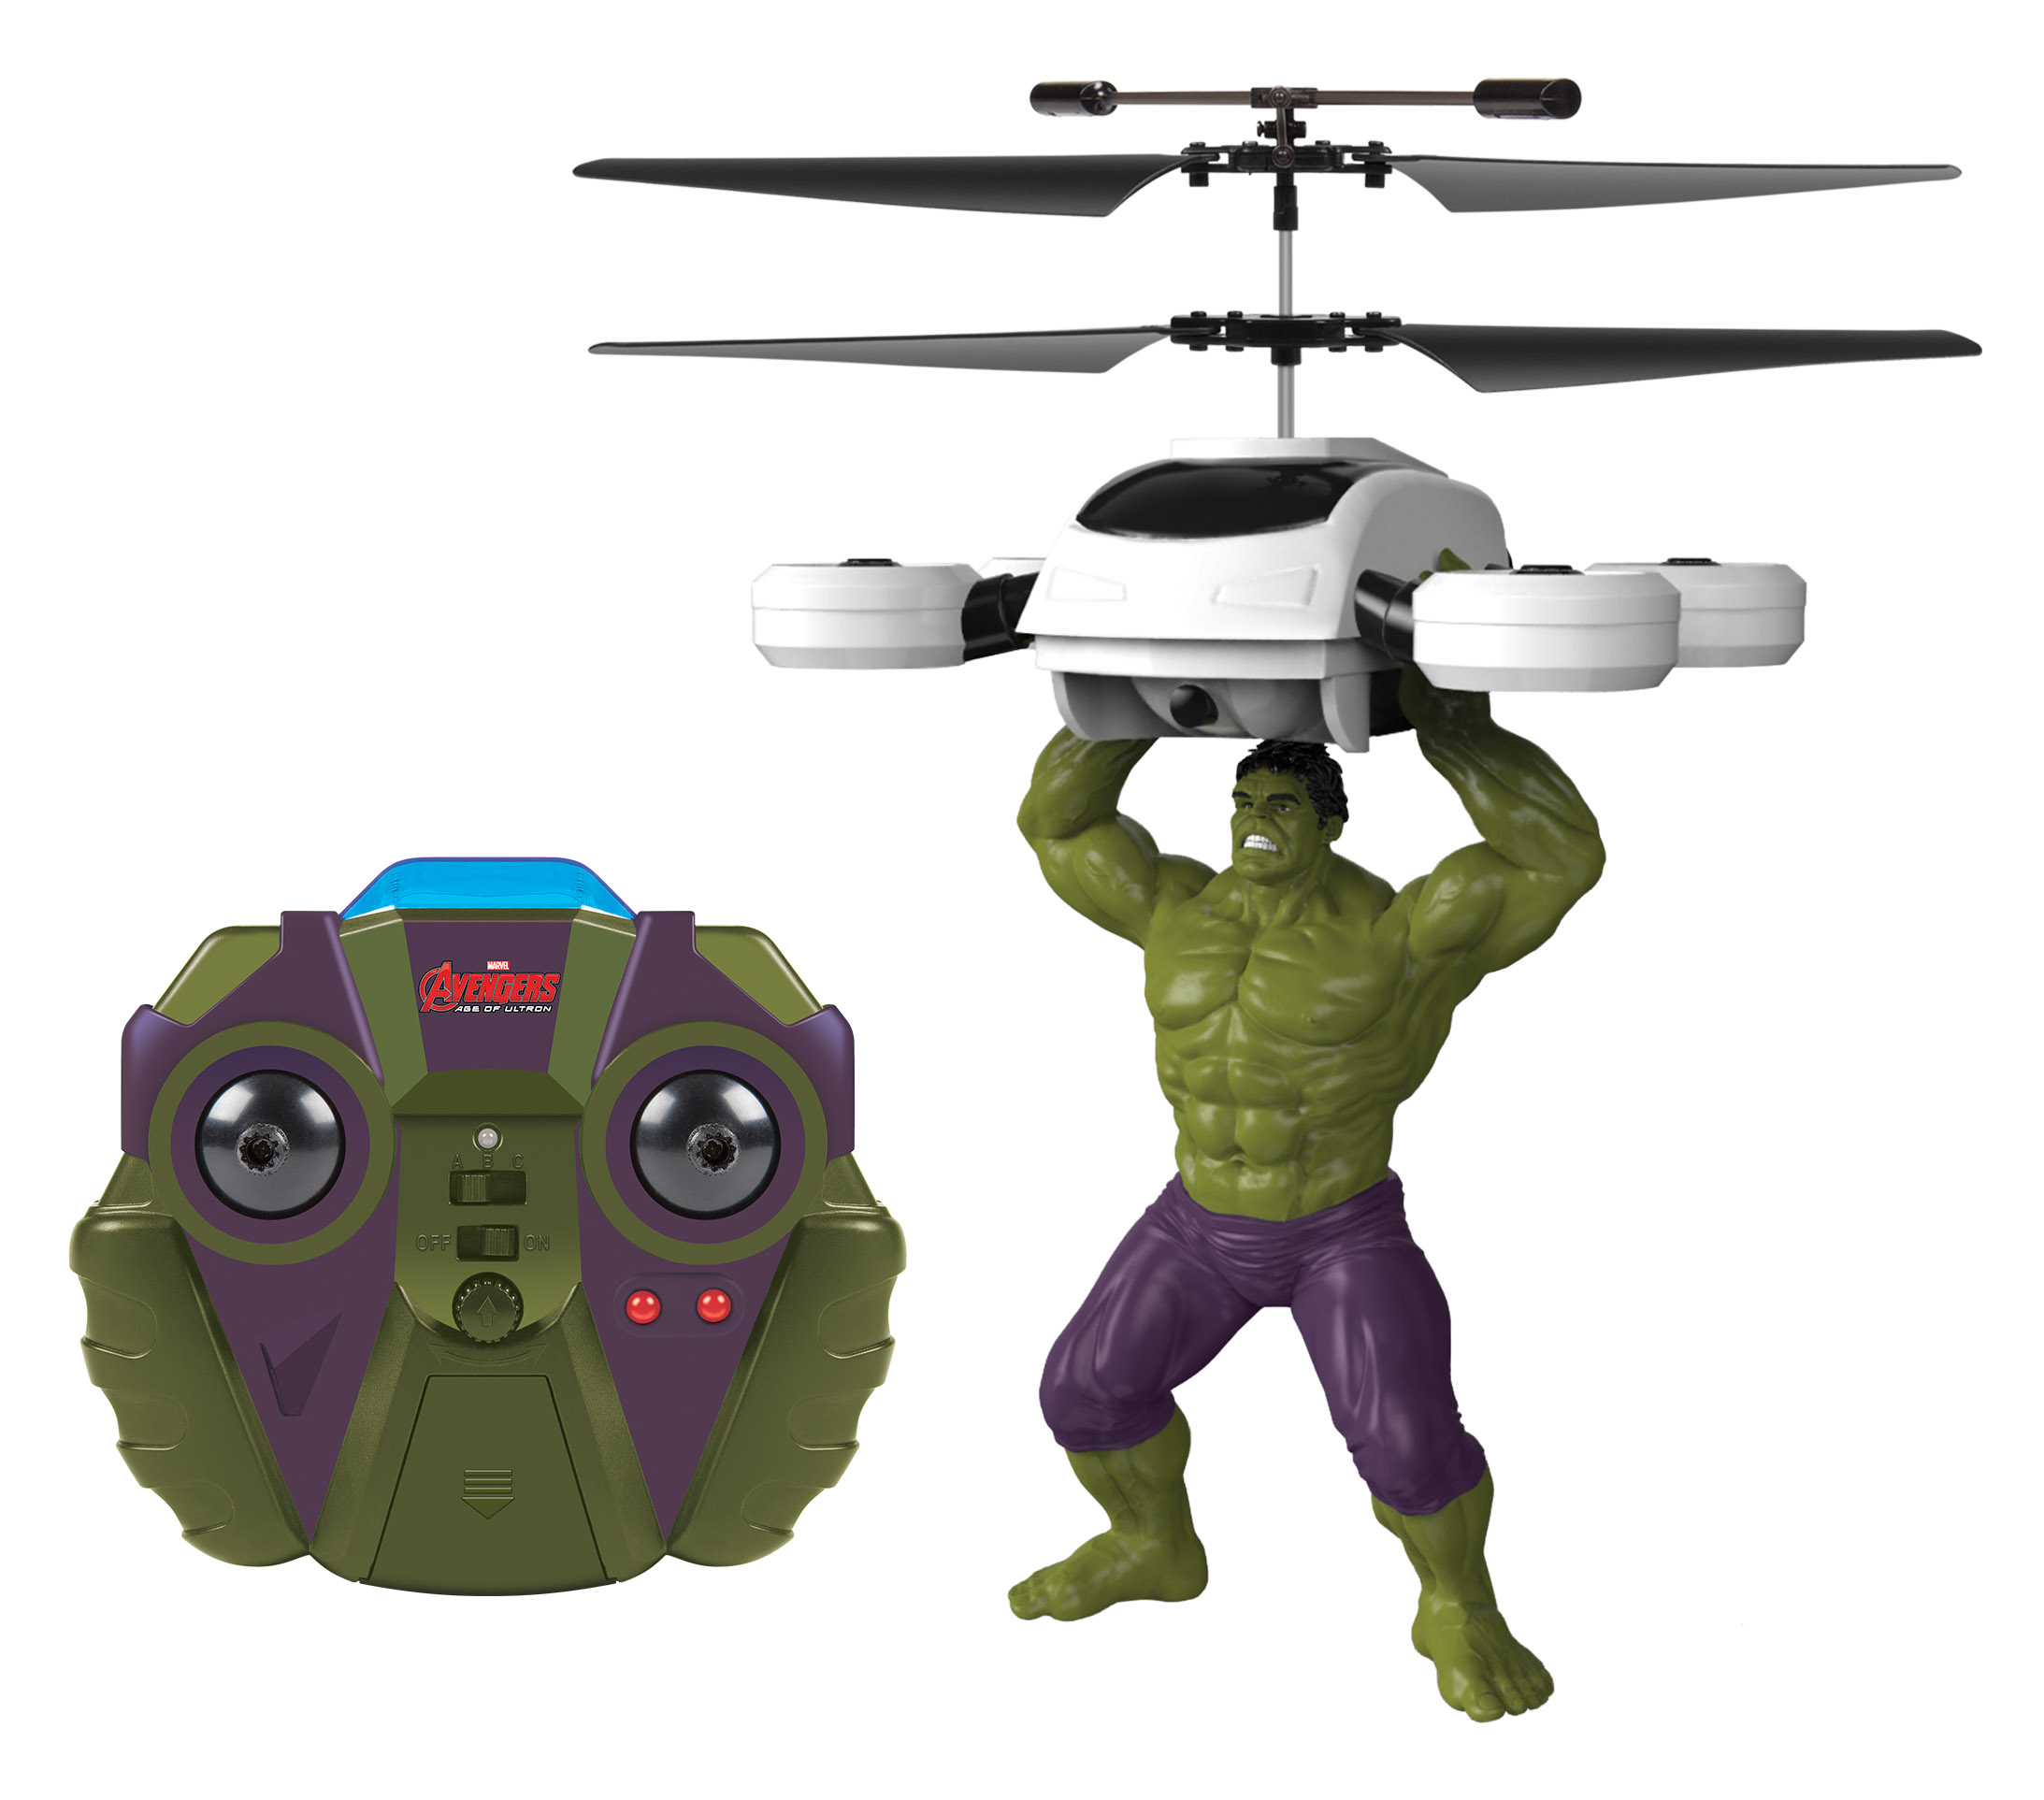 Marvel Licensed Avengers Hulk 2CH IR RC Helicopter by World Tech Toys